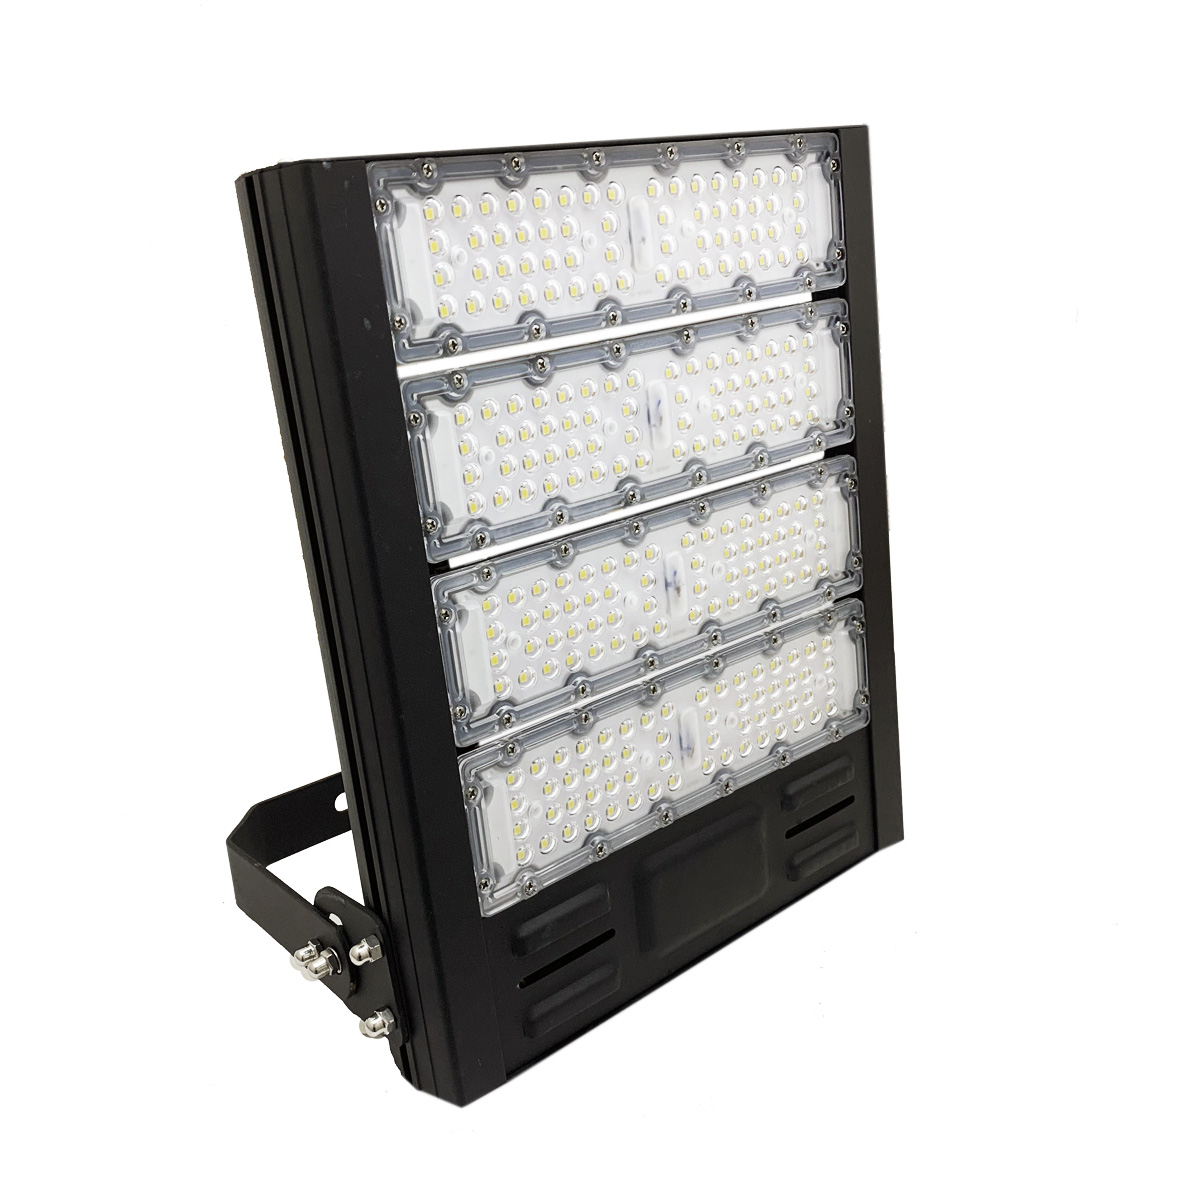 LED floodlight 200W Headlight modules IP65 External protection driver FE69-200W